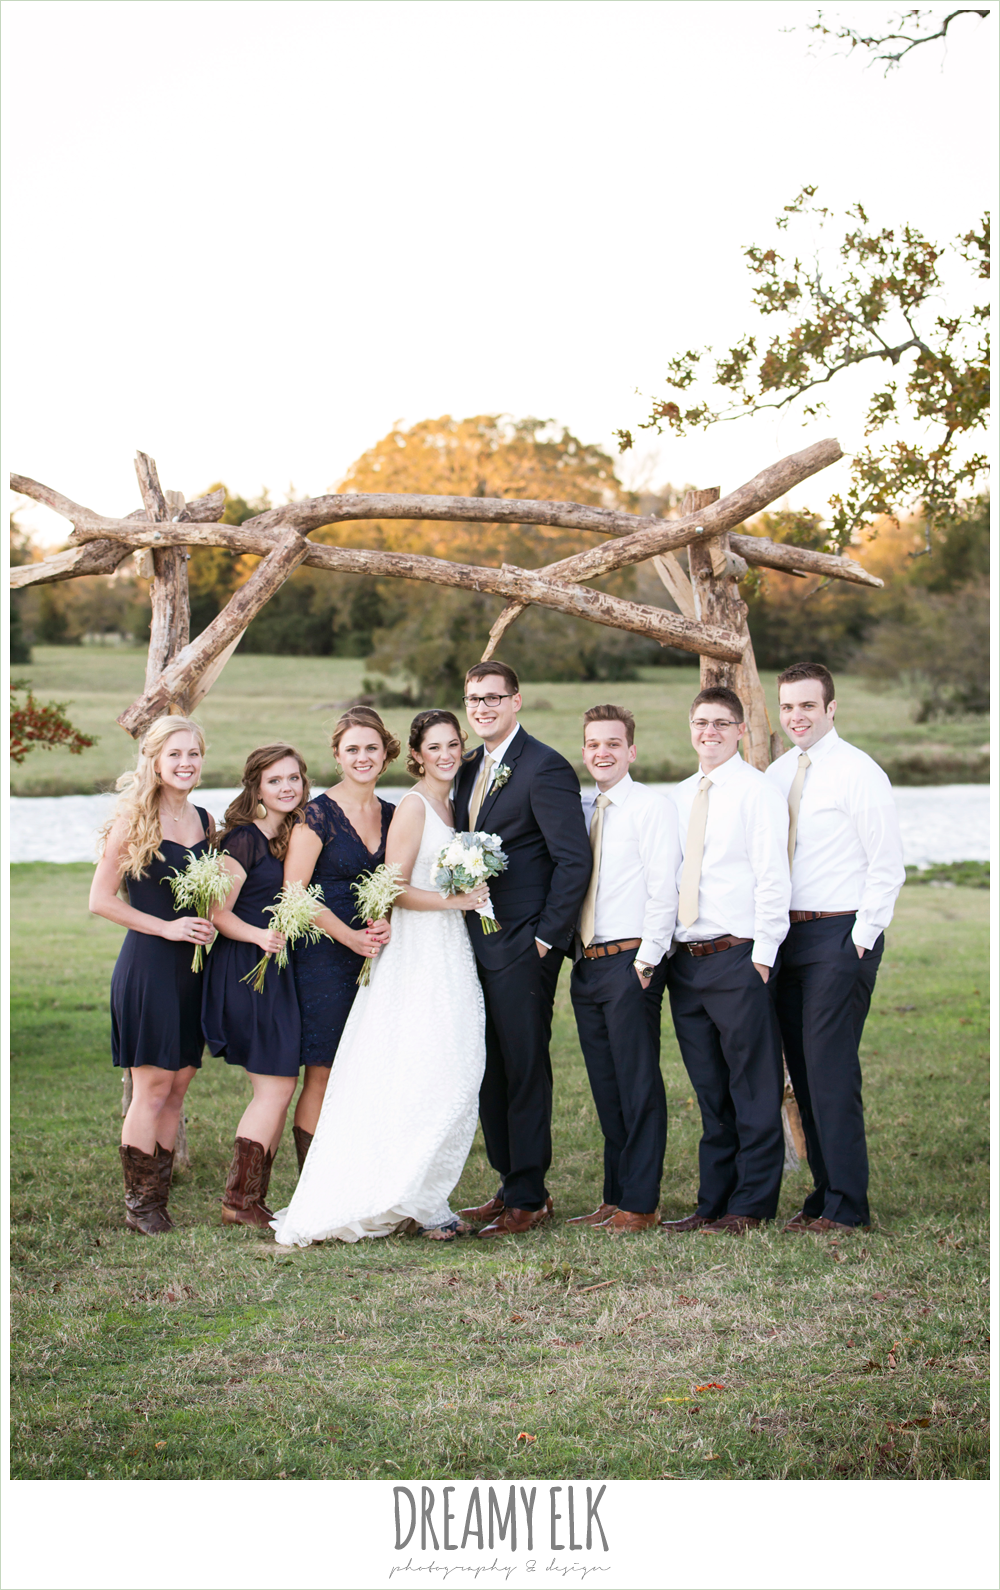 bridal party, rustic chic wedding photo, the amish barn at edge {dreamy elk photography and design}